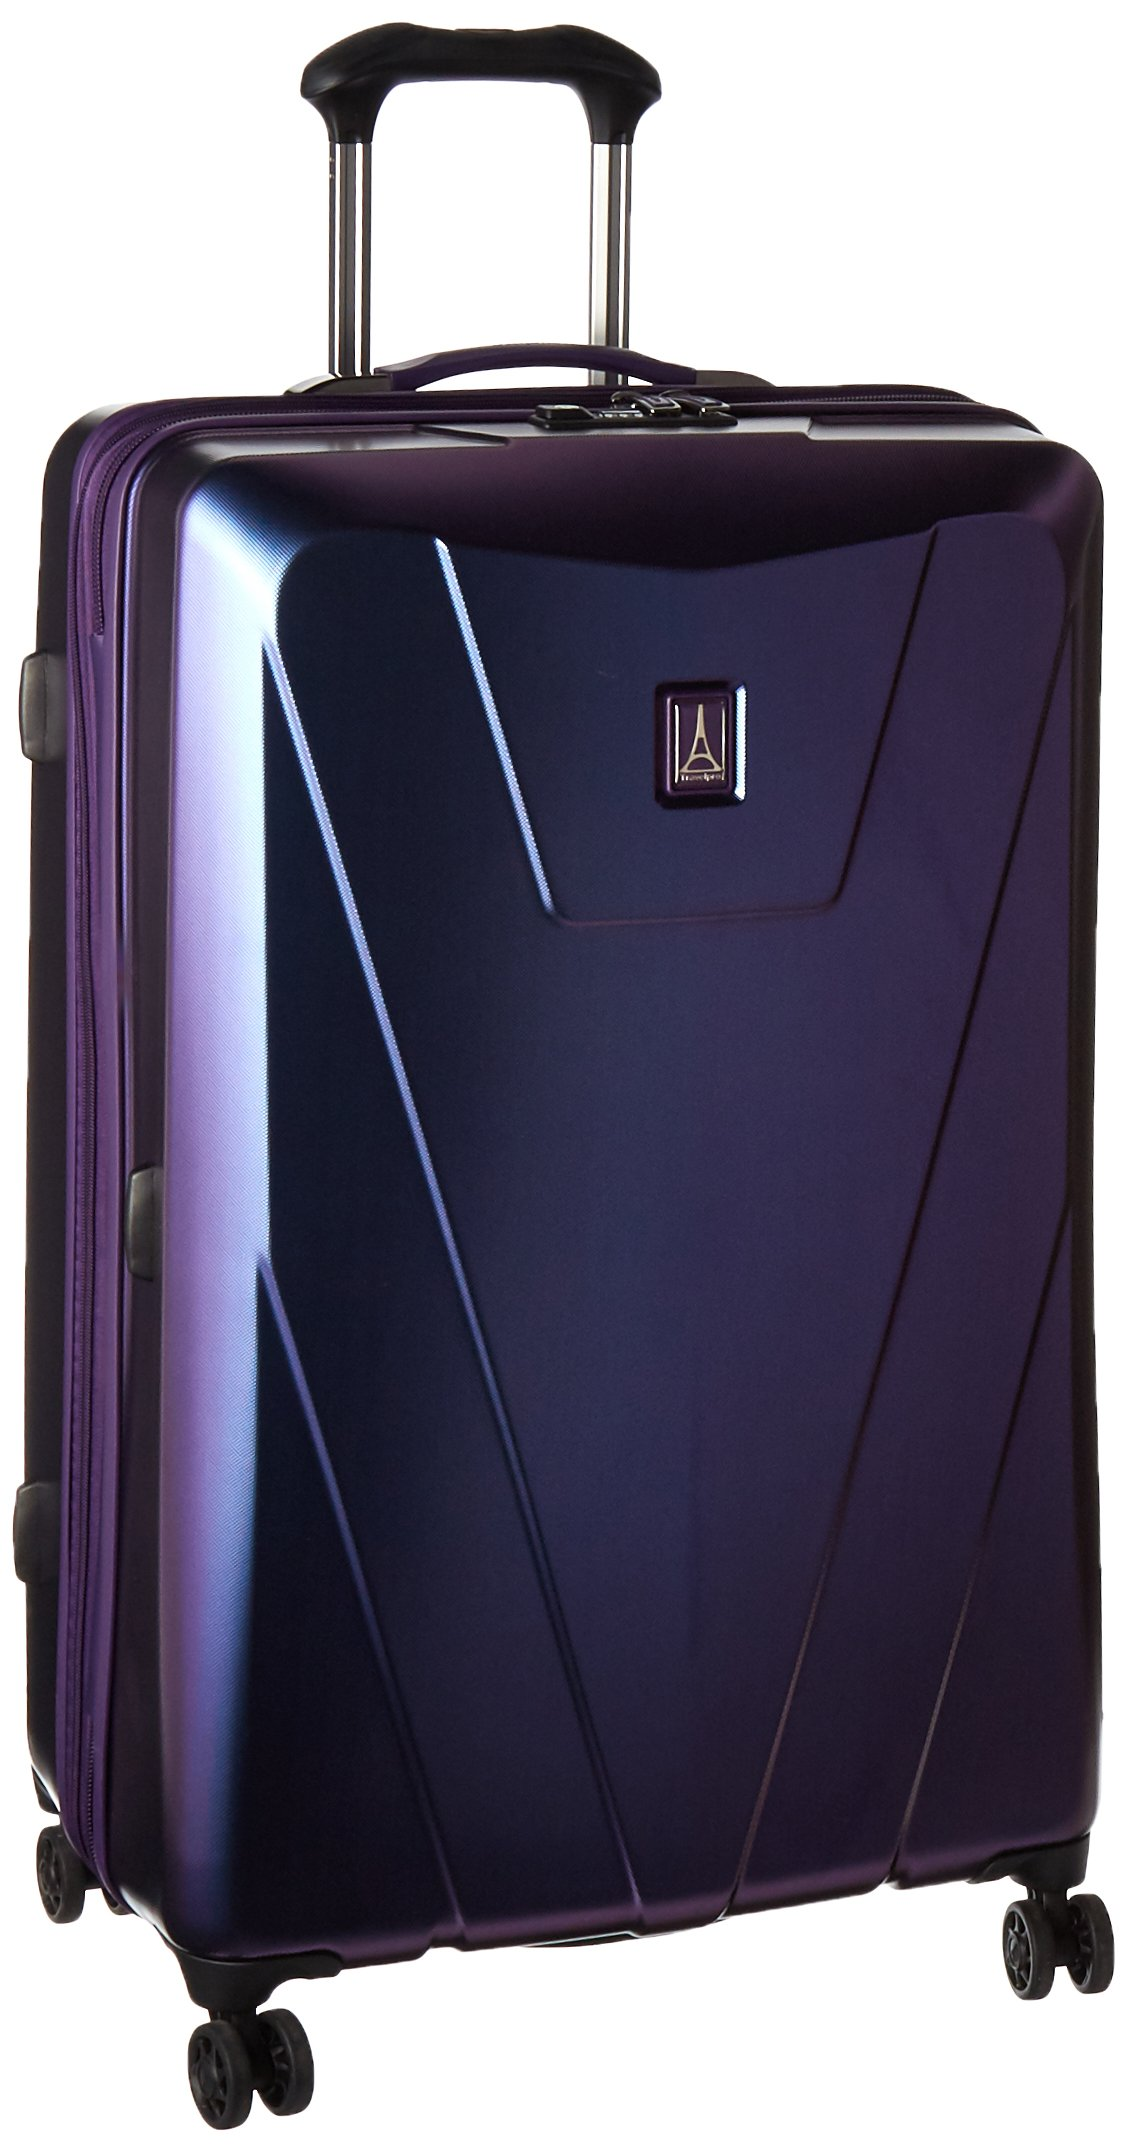 Travelpro Maxlite 4 29'' Hardside Spinner, Dark Purple